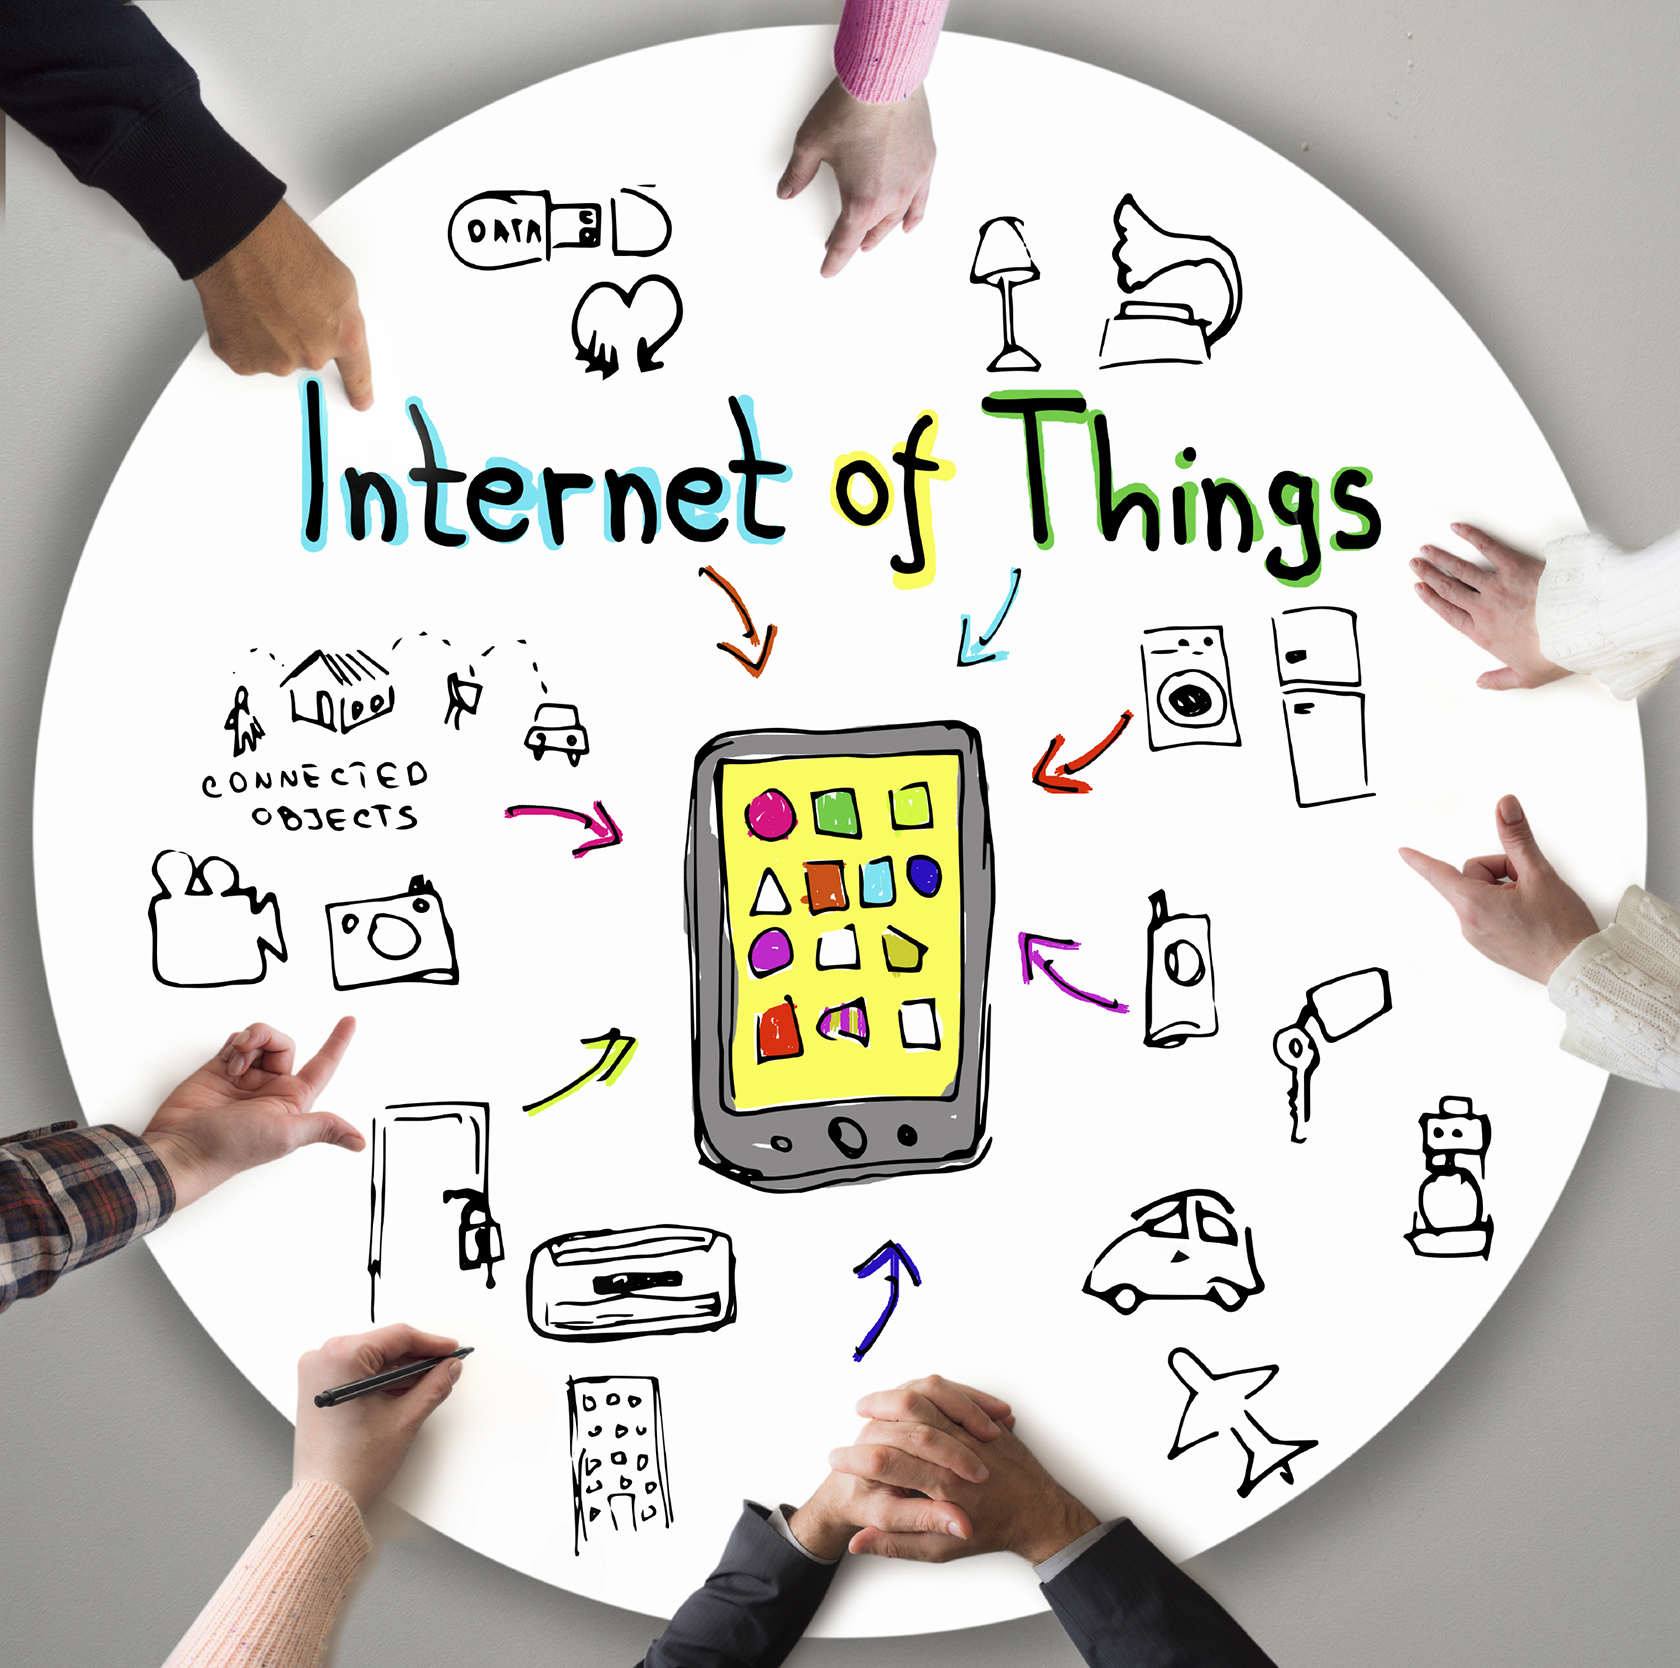 Android and IoT - An (almost) Perfect Match